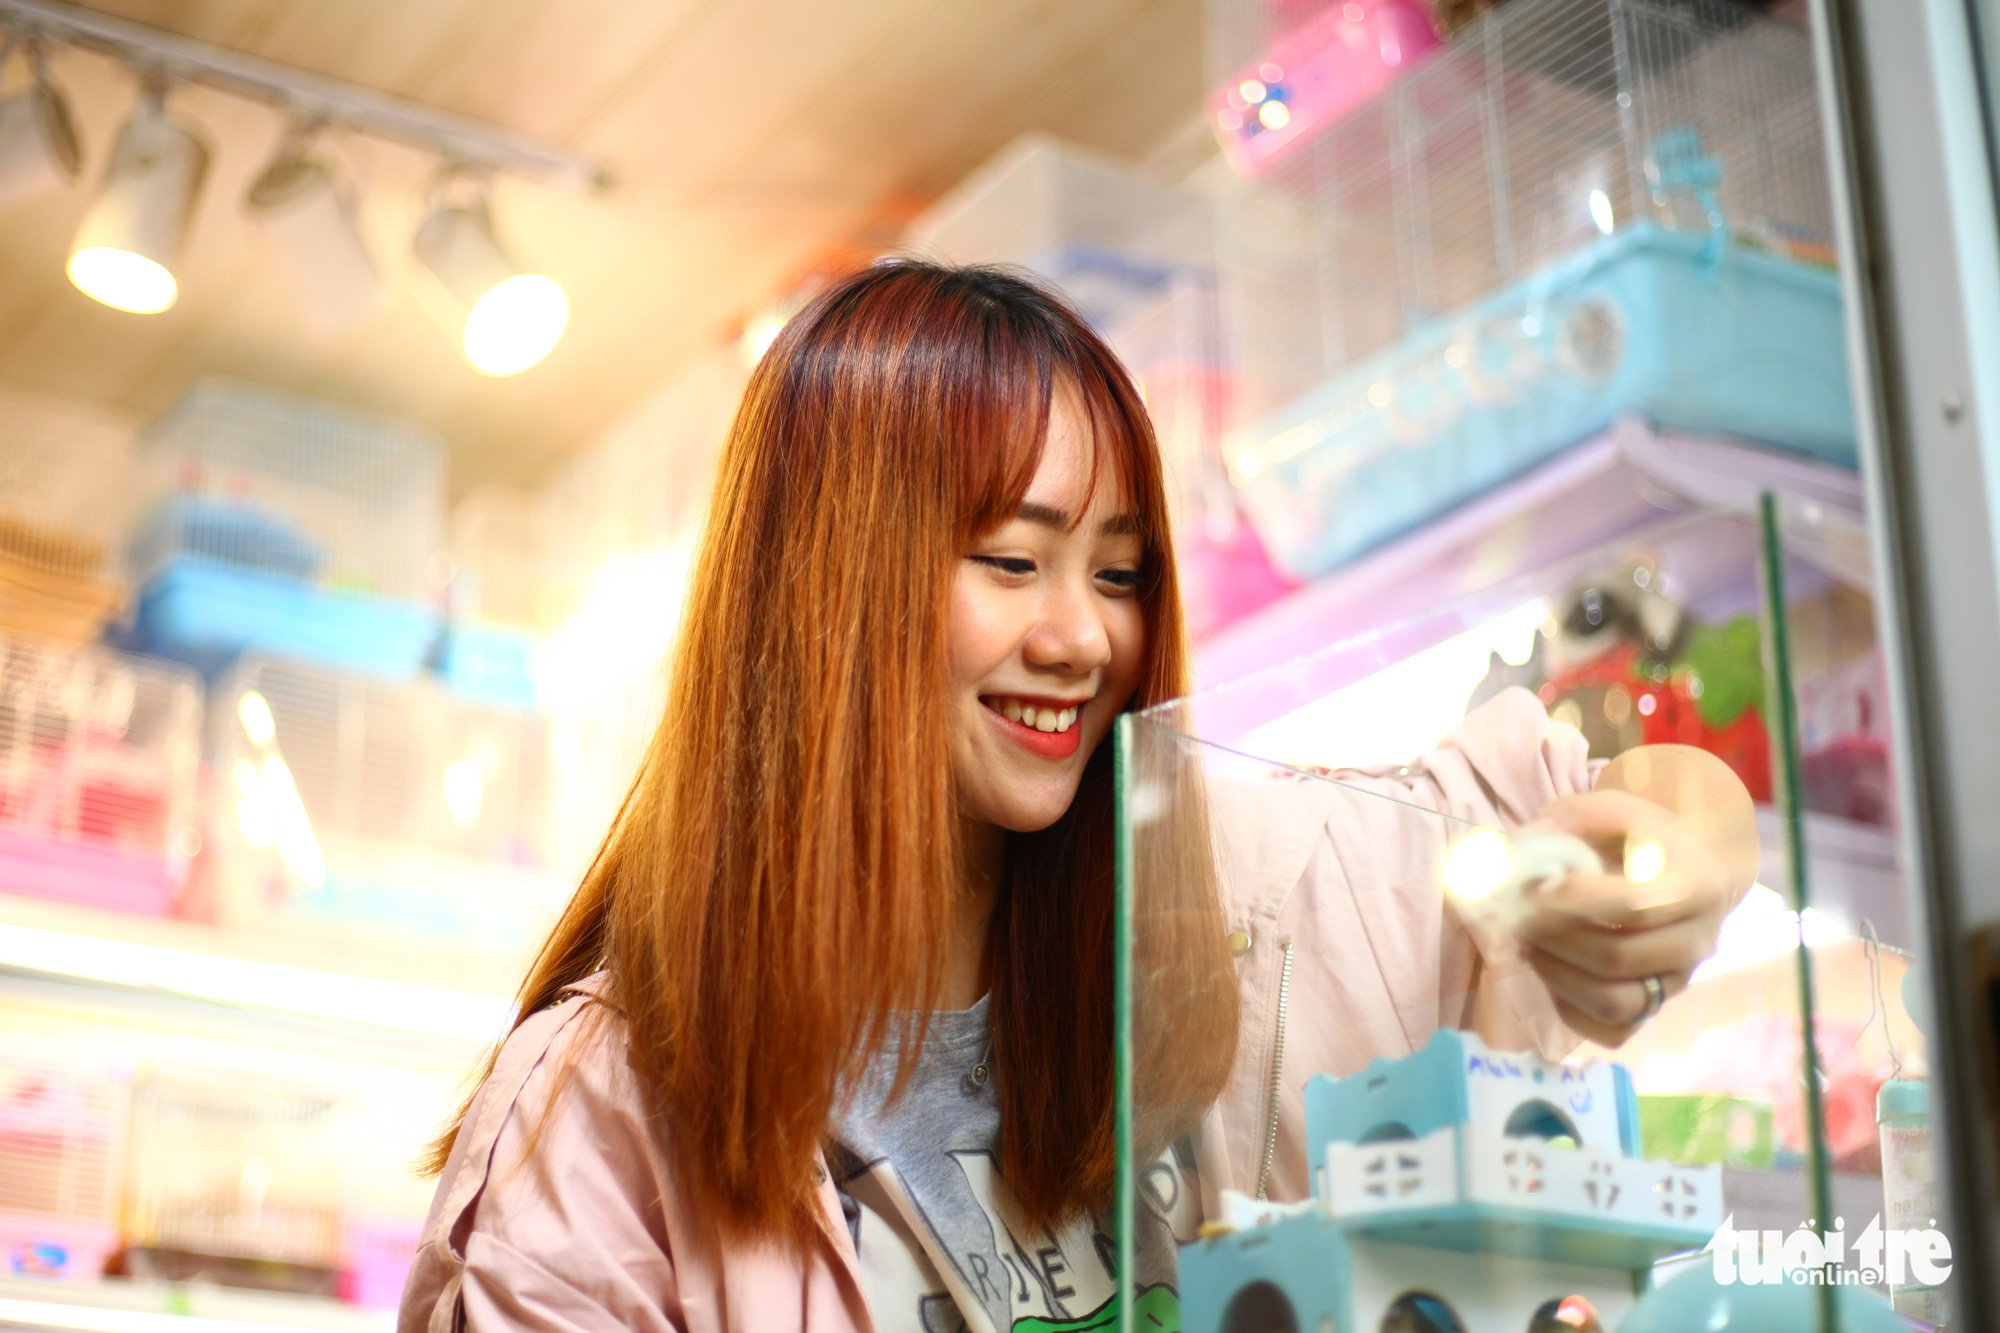 Linh Dan, a resident of Thanh Xuan District, Hanoi, shops for a hamster at a local pet shop. Photo: Mai Thuong / Tuoi Tre